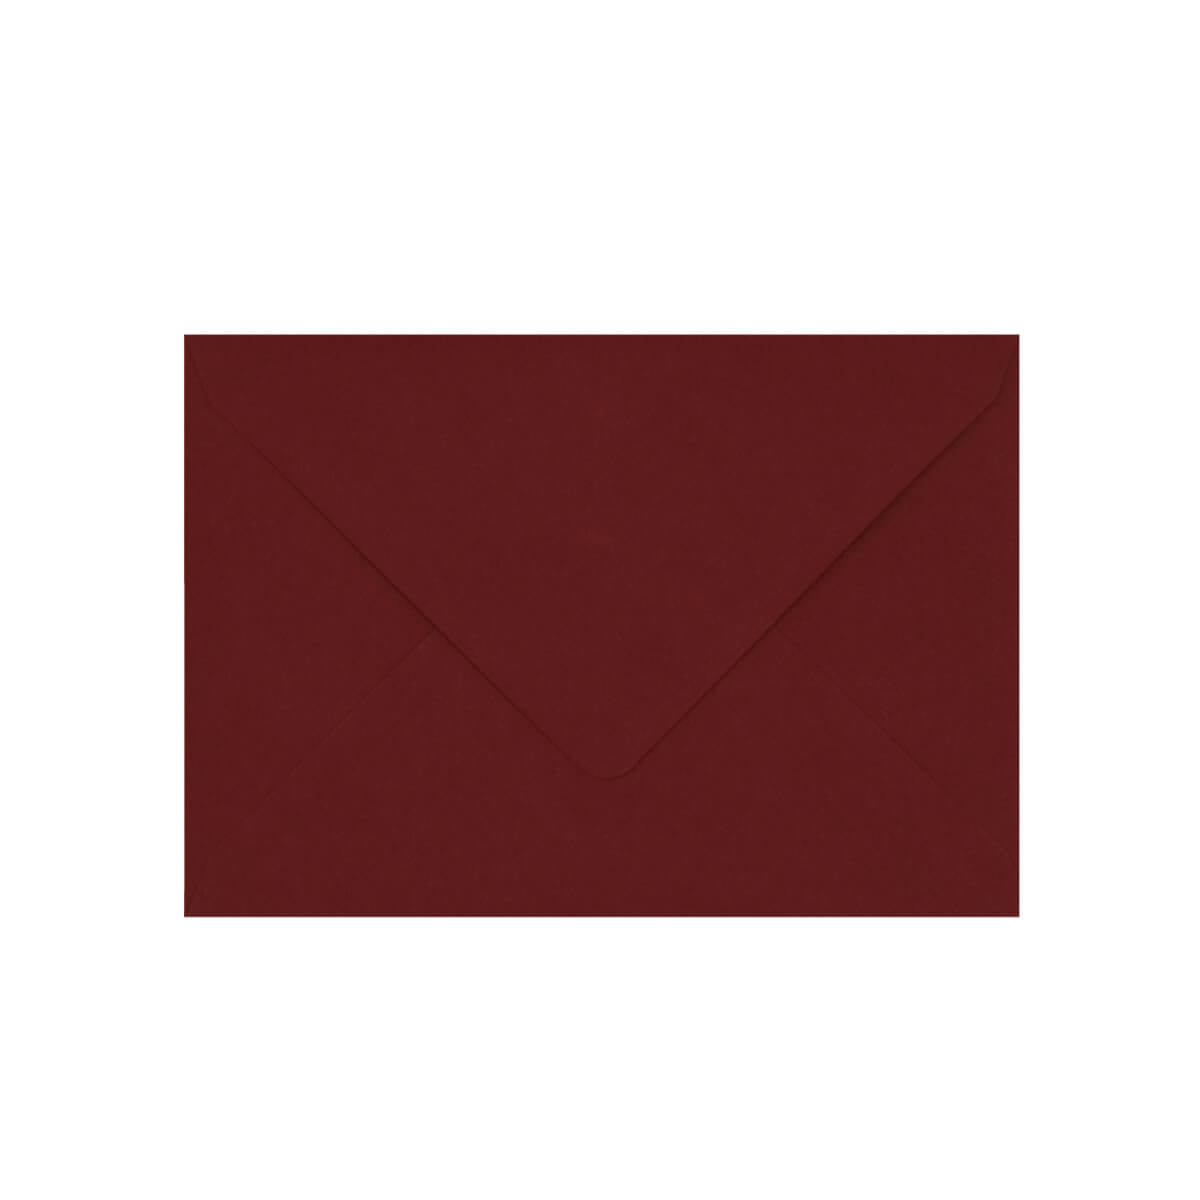 BURGUNDY 152 x 216mm ENVELOPES 120GSM